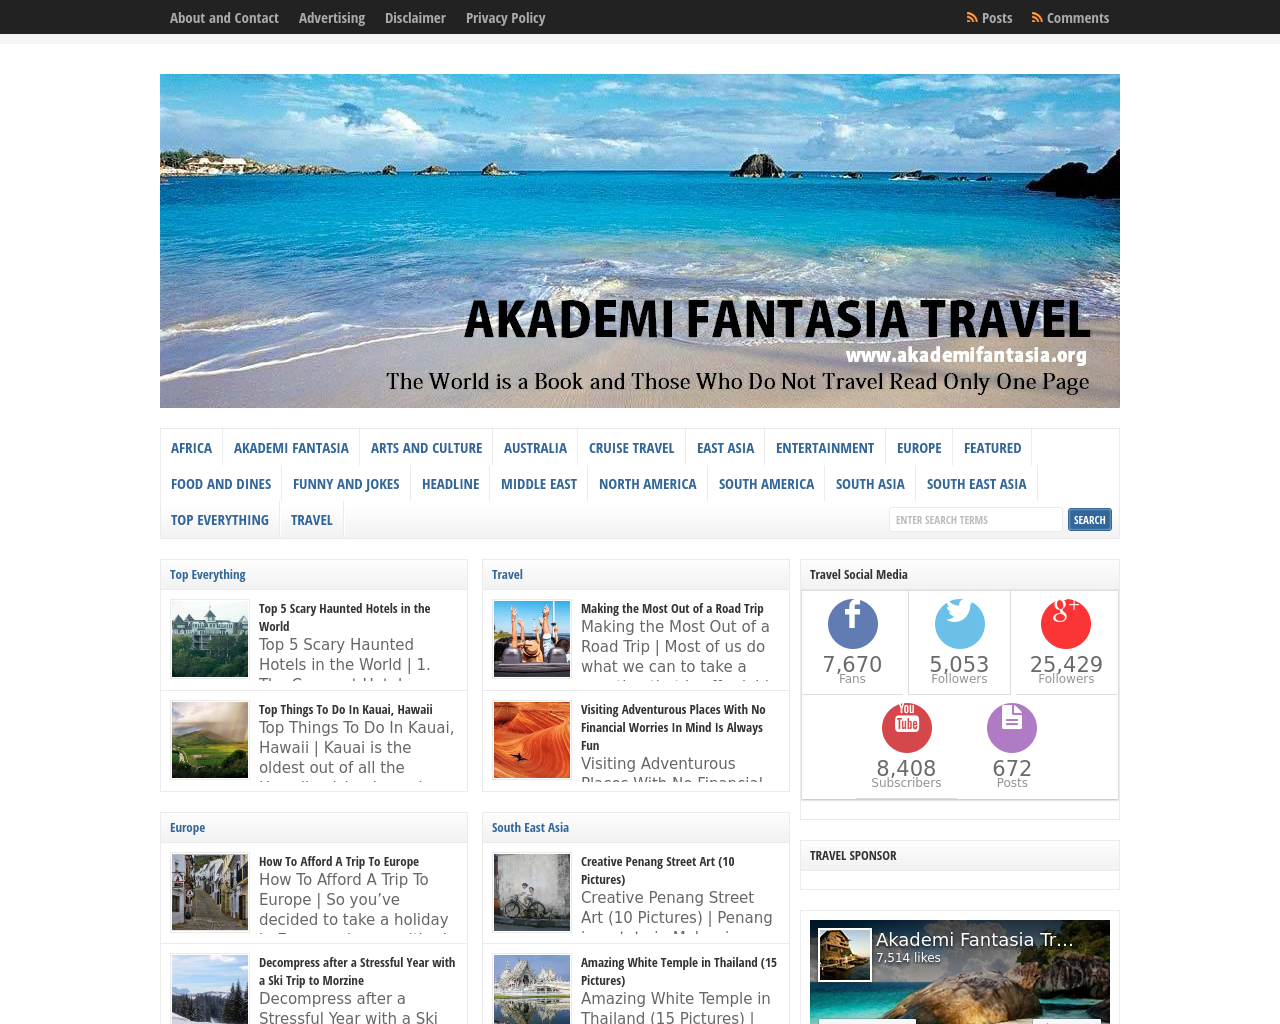 Akademi-Fantasia-Advertising-Reviews-Pricing